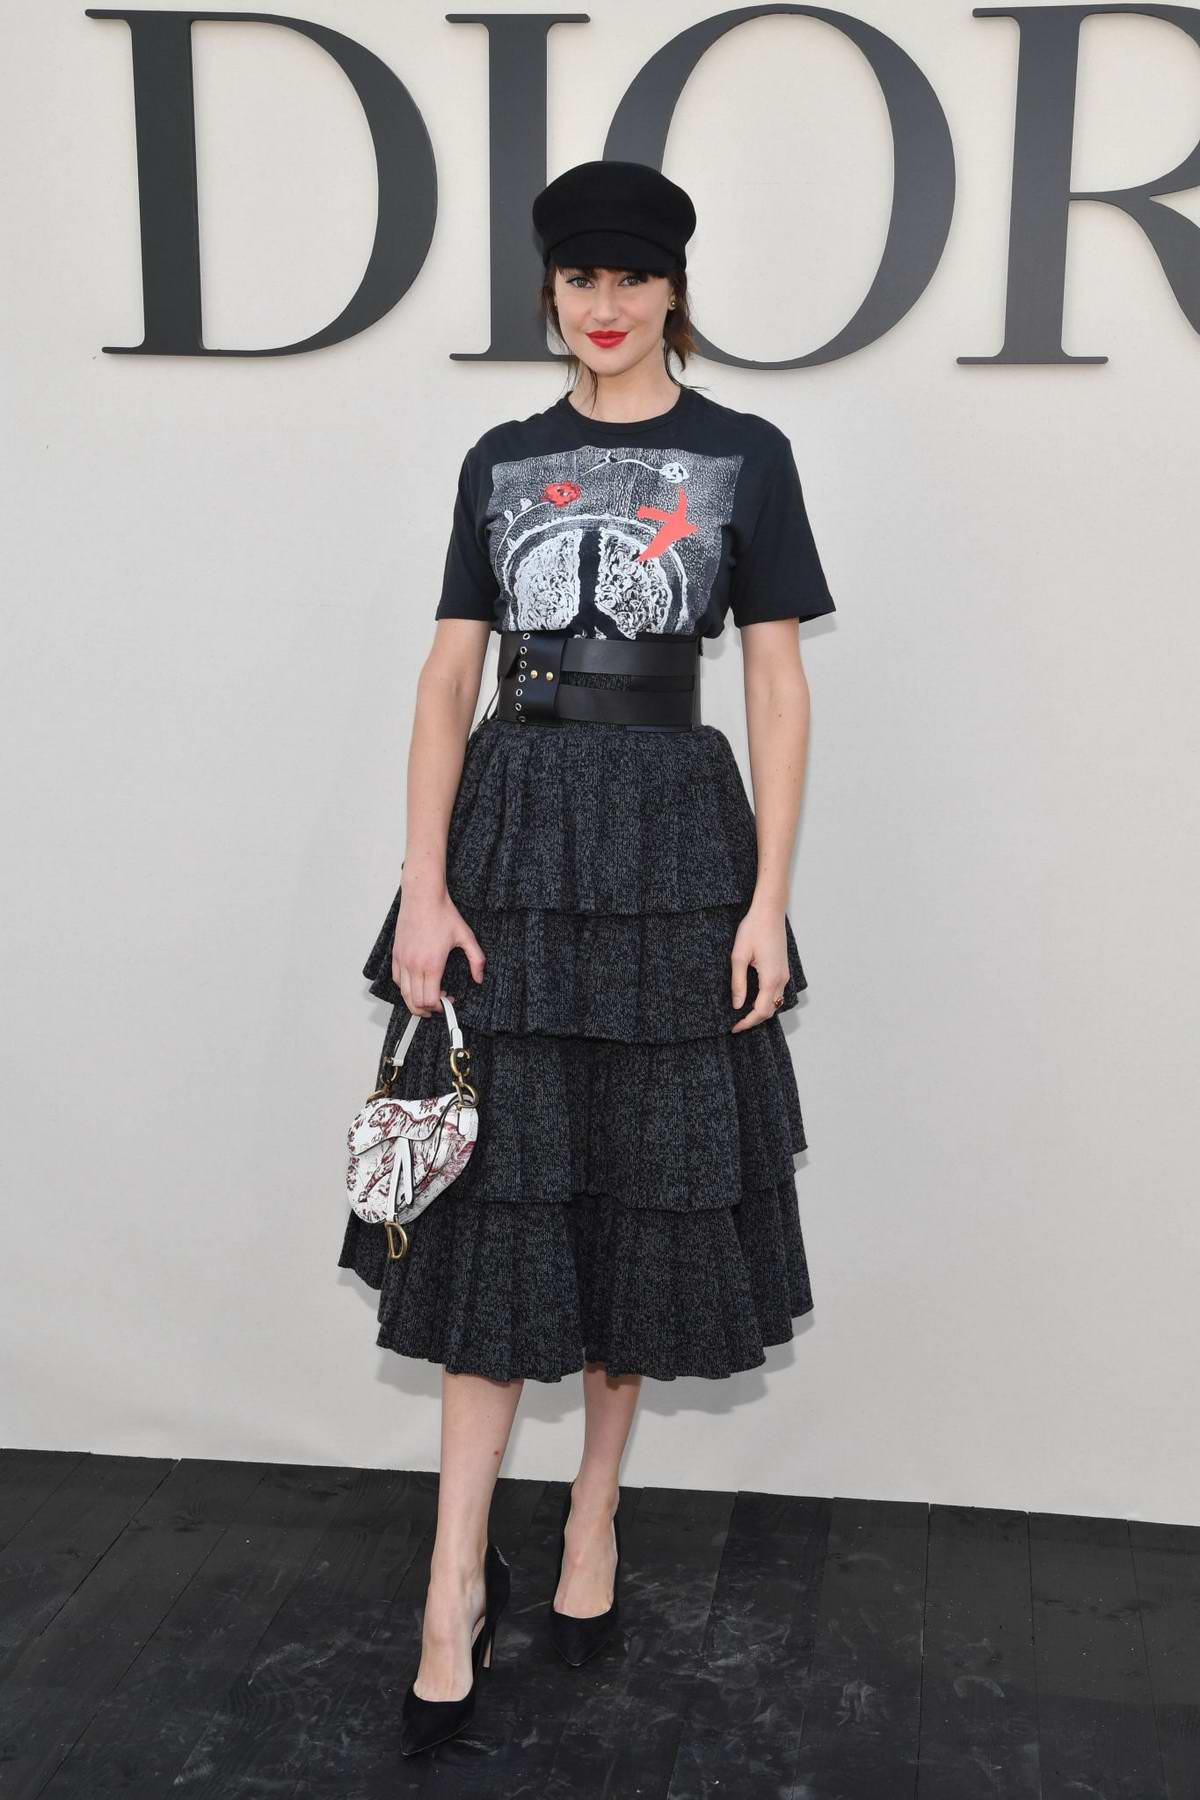 Shailene Woodley attends the Christian Dior Show during Paris Fashion Week in Paris, France